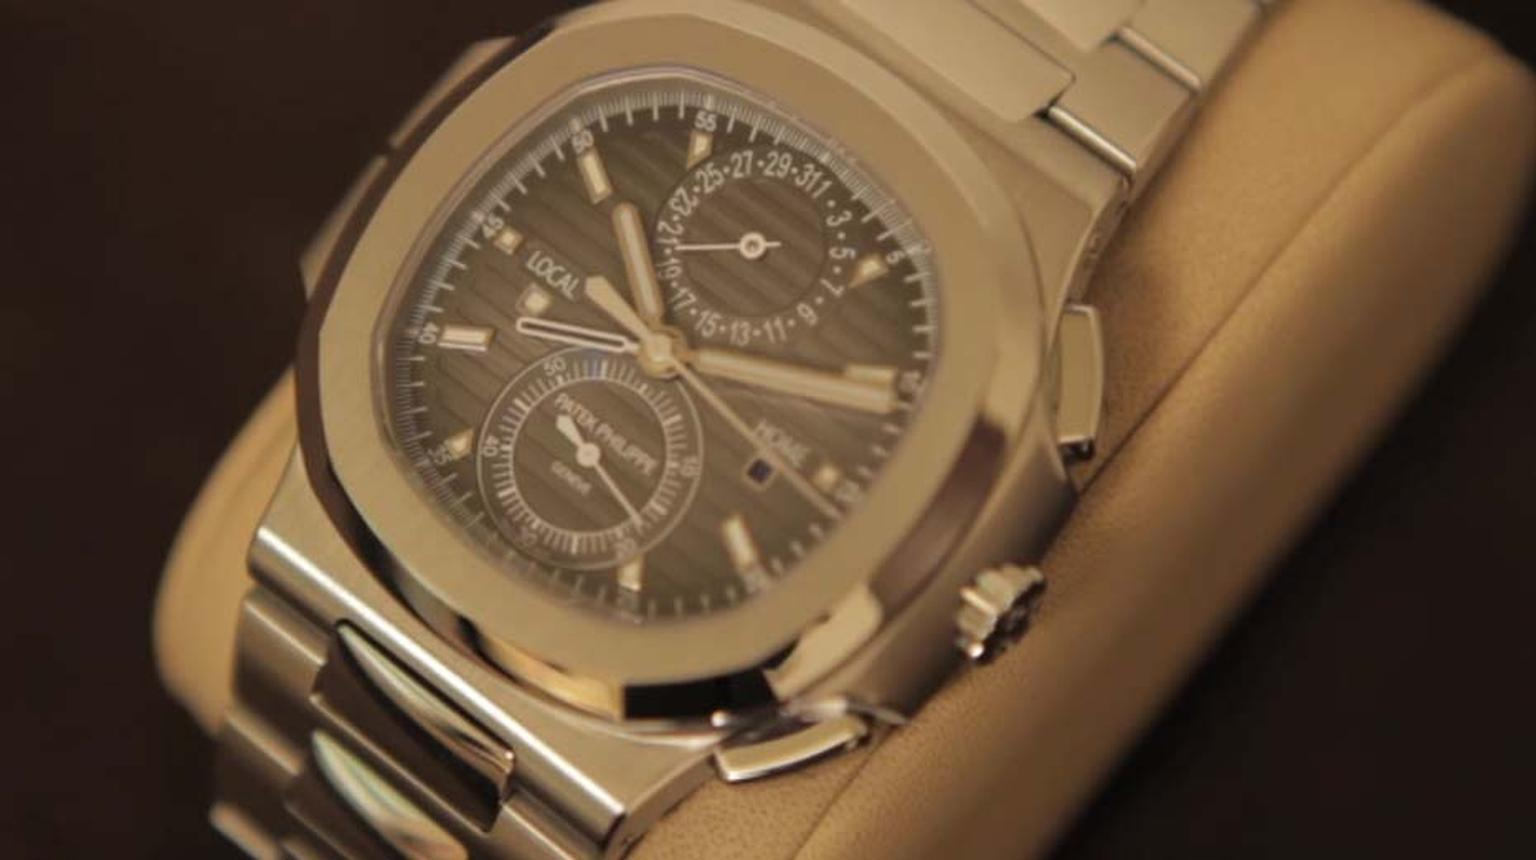 Thierry Stern fondly remembers his first Patek Philippe watch, which was the same shape as the newest Patek Philippe Nautilus, with its new travel time movement